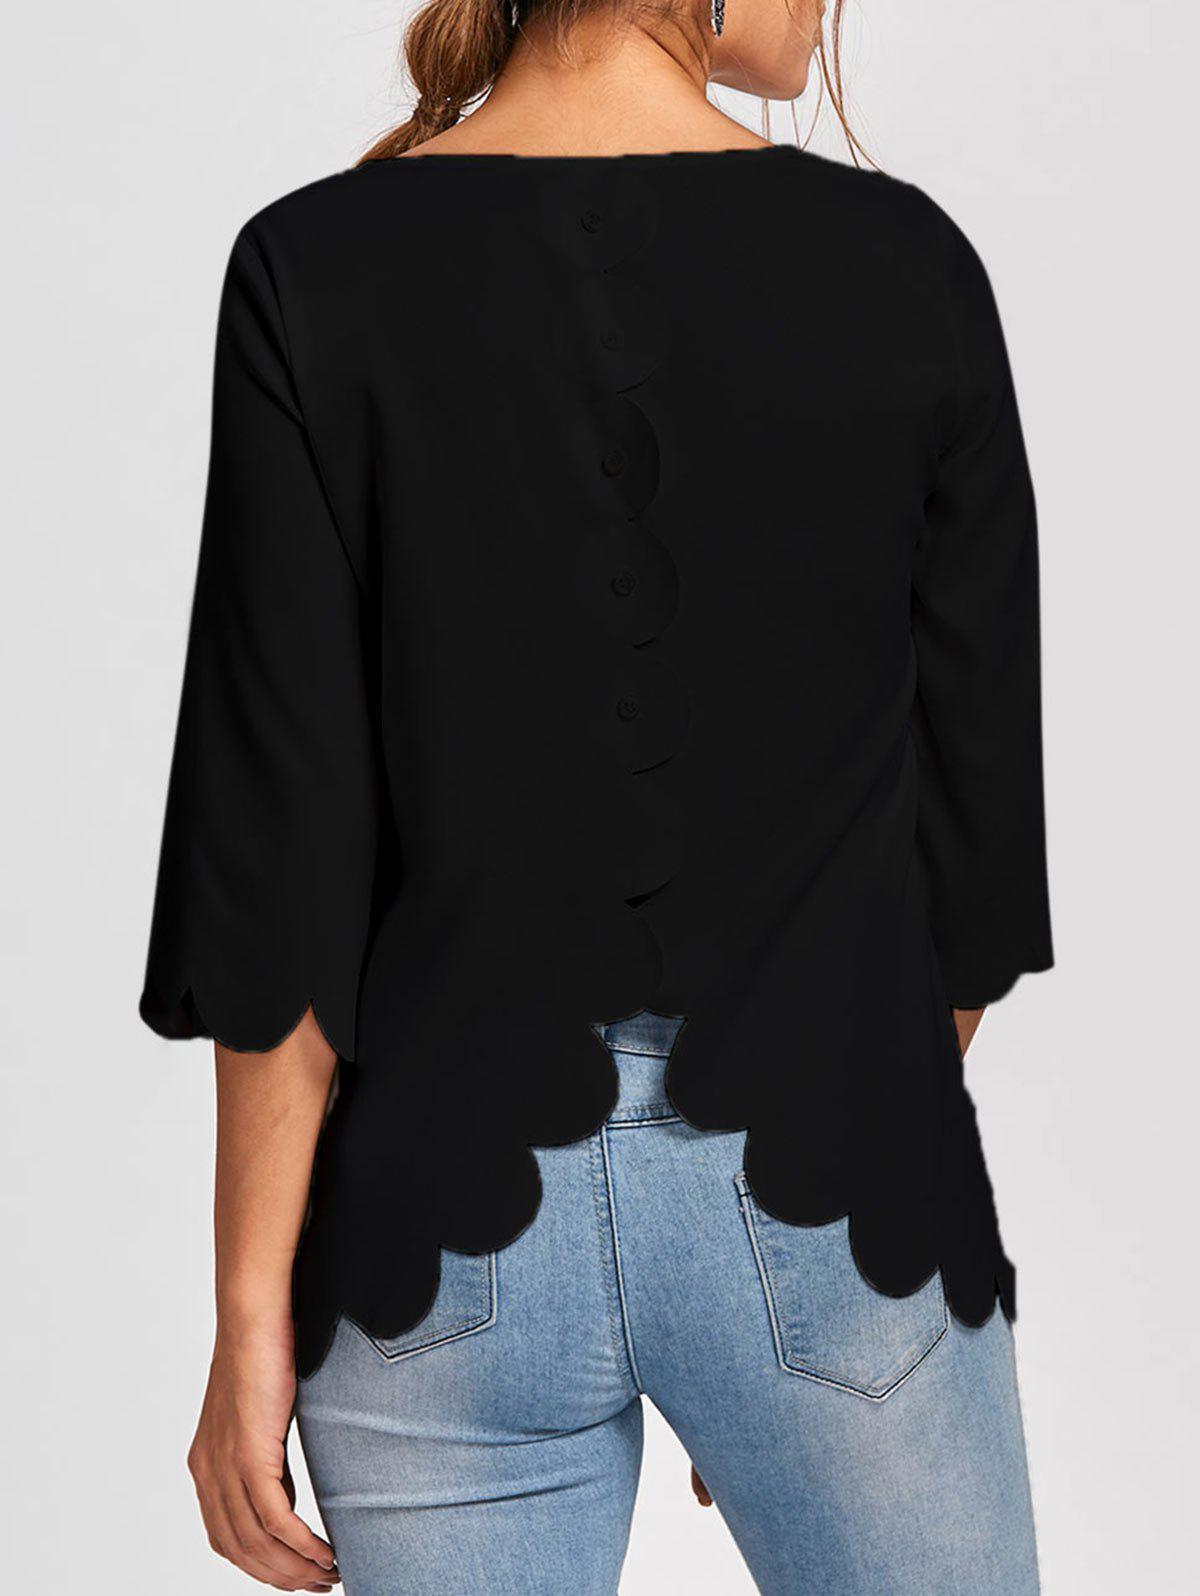 Button Embellished Scalloped Edge BlouseWOMEN<br><br>Size: L; Color: BLACK; Occasion: Casual,Evening,Party; Style: Fashion; Material: Polyester; Shirt Length: Long; Sleeve Length: Full; Collar: Round Neck; Pattern Type: Solid; Embellishment: Button; Season: Fall,Spring,Summer; Weight: 0.1700kg; Package Contents: 1 x Blouse;